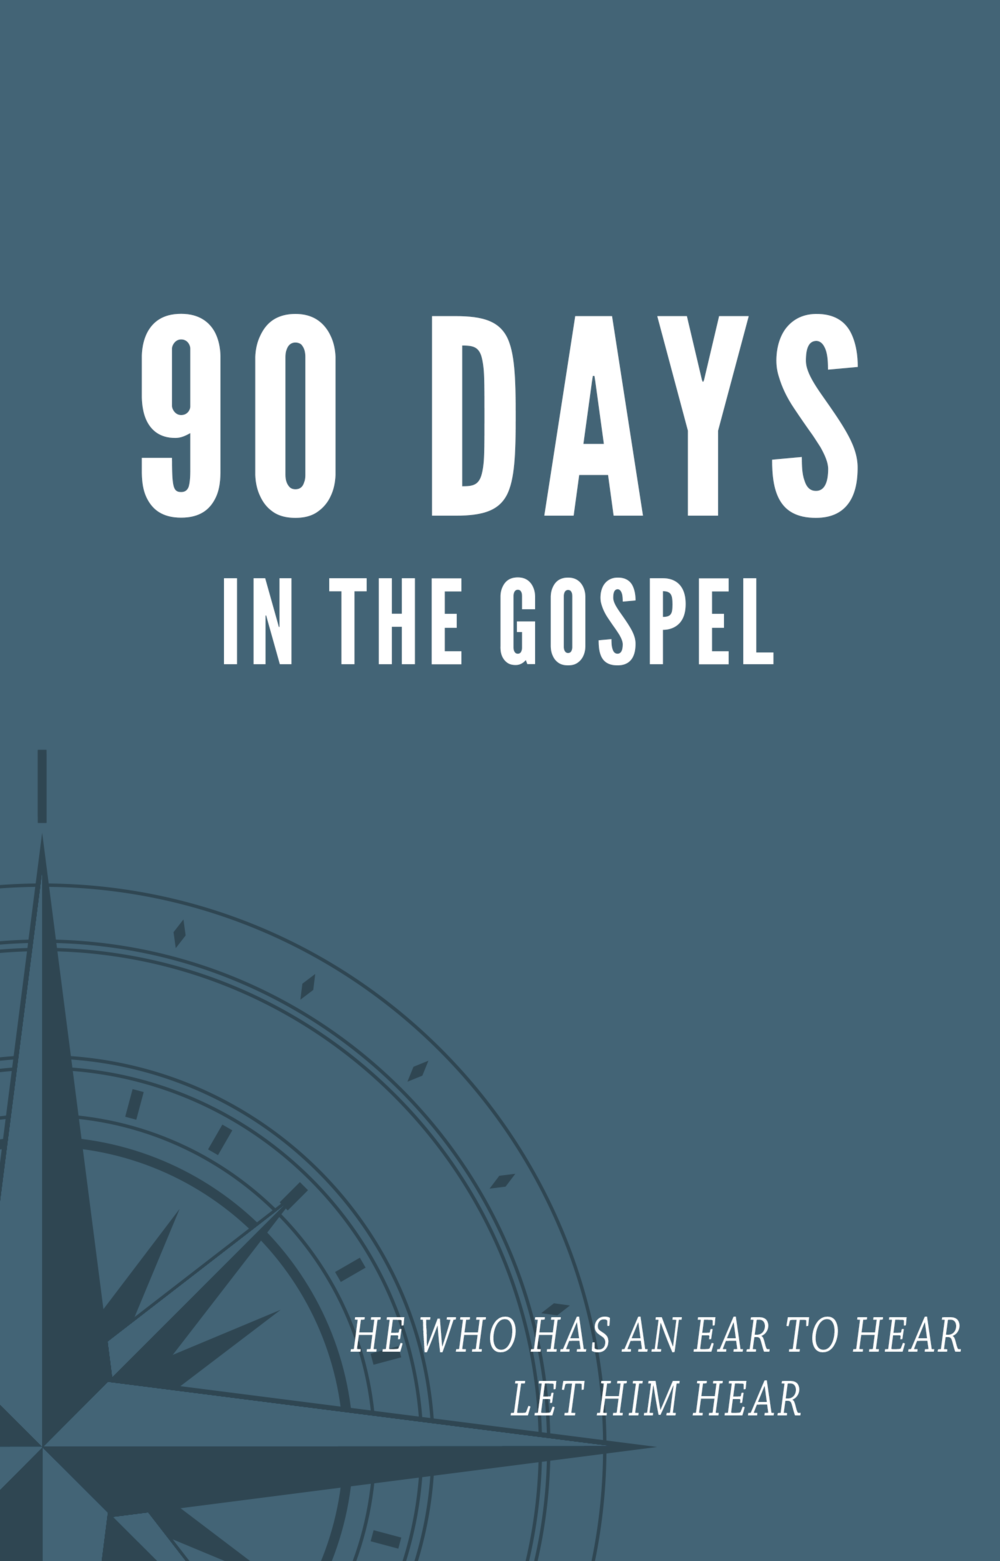 WHY THIS JOURNAL - Welcome to the 90 DAYS...journal.  A resource intended to help you draw nearer to God.  One of Jesus' frequent admonishments is the Gospels is